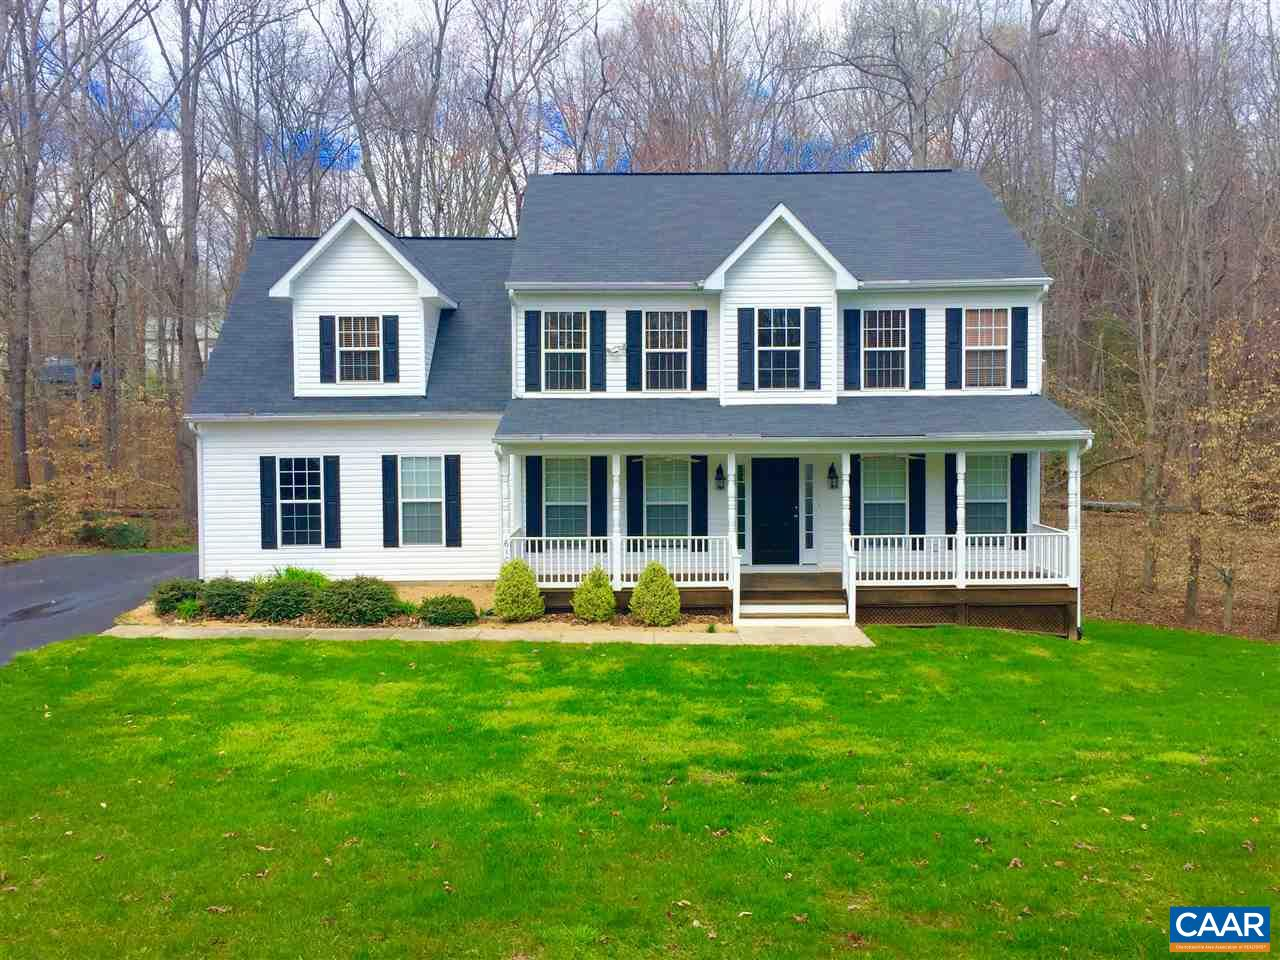 Single Family Home for Sale at 6106 BILLS Road Mineral, Virginia 23117 United States